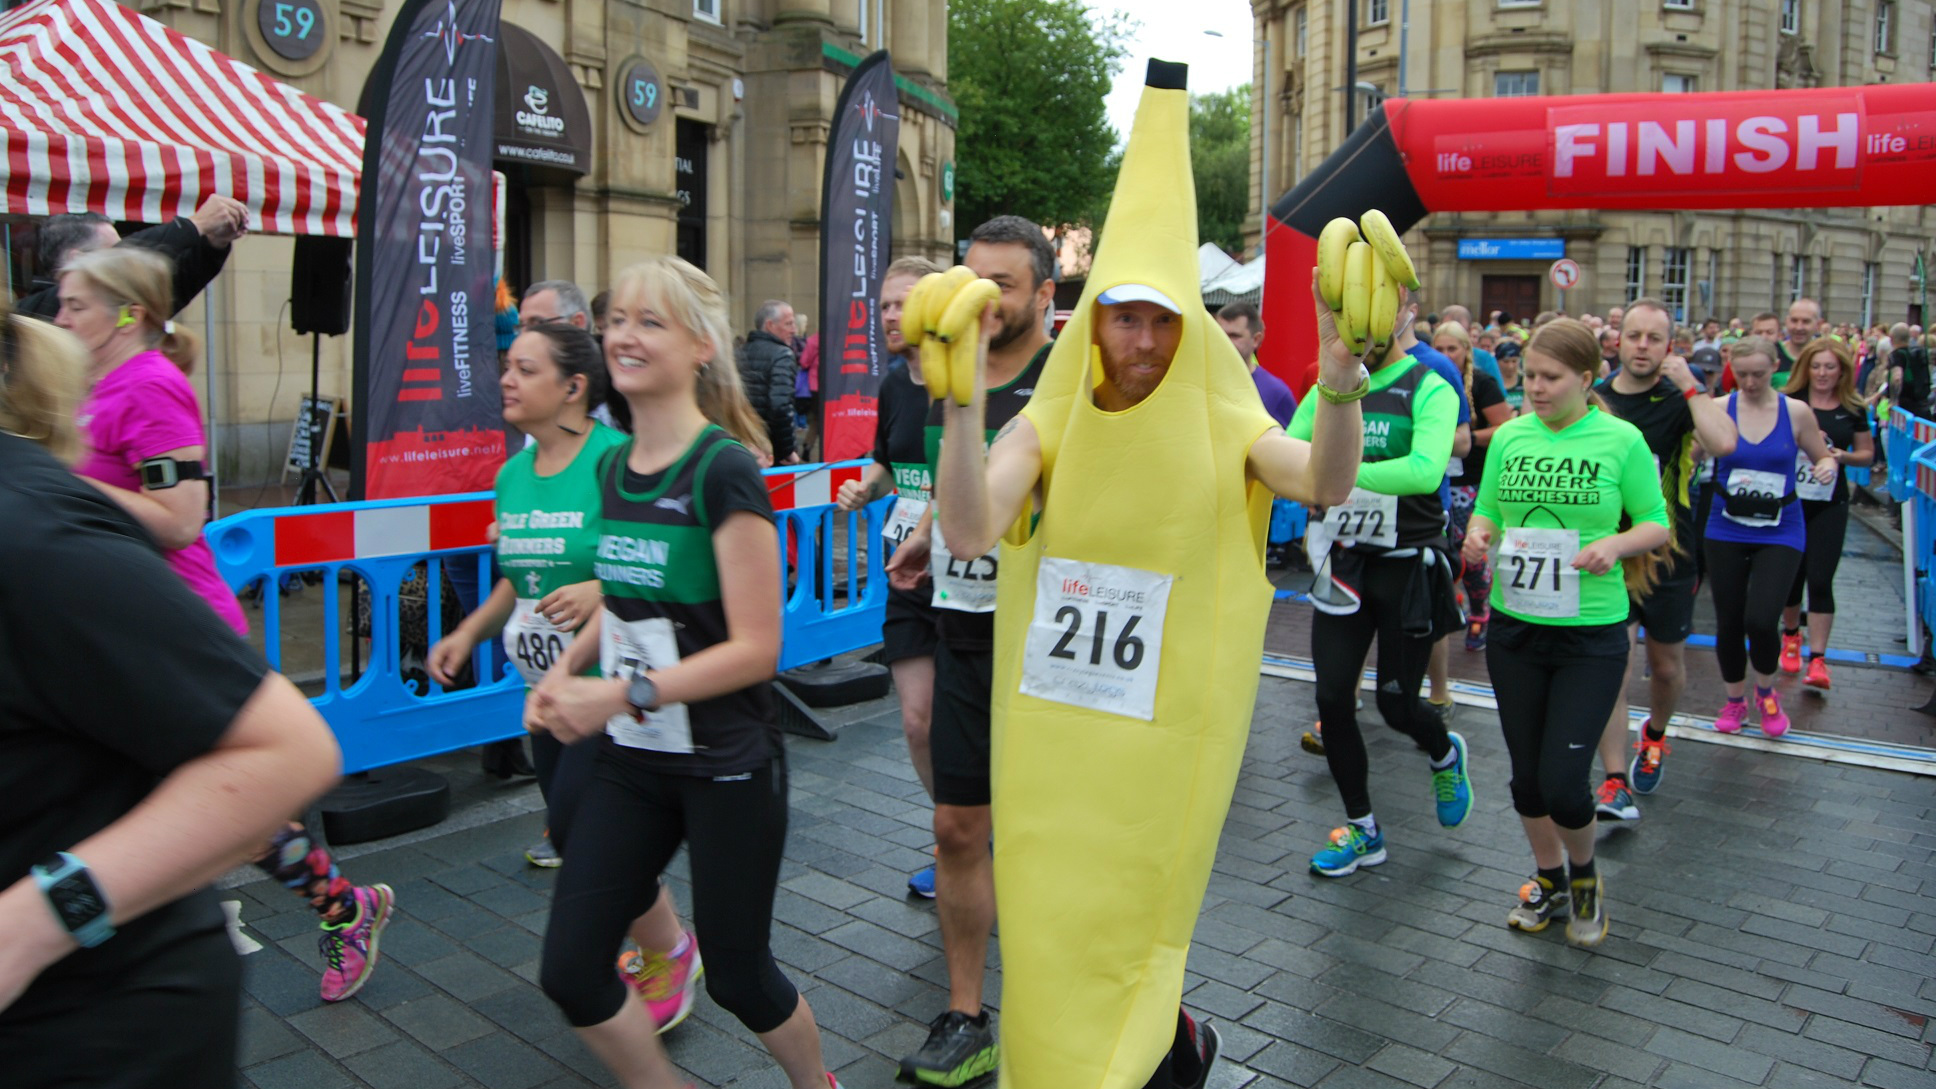 Huge Turnout for Big Stockport Run